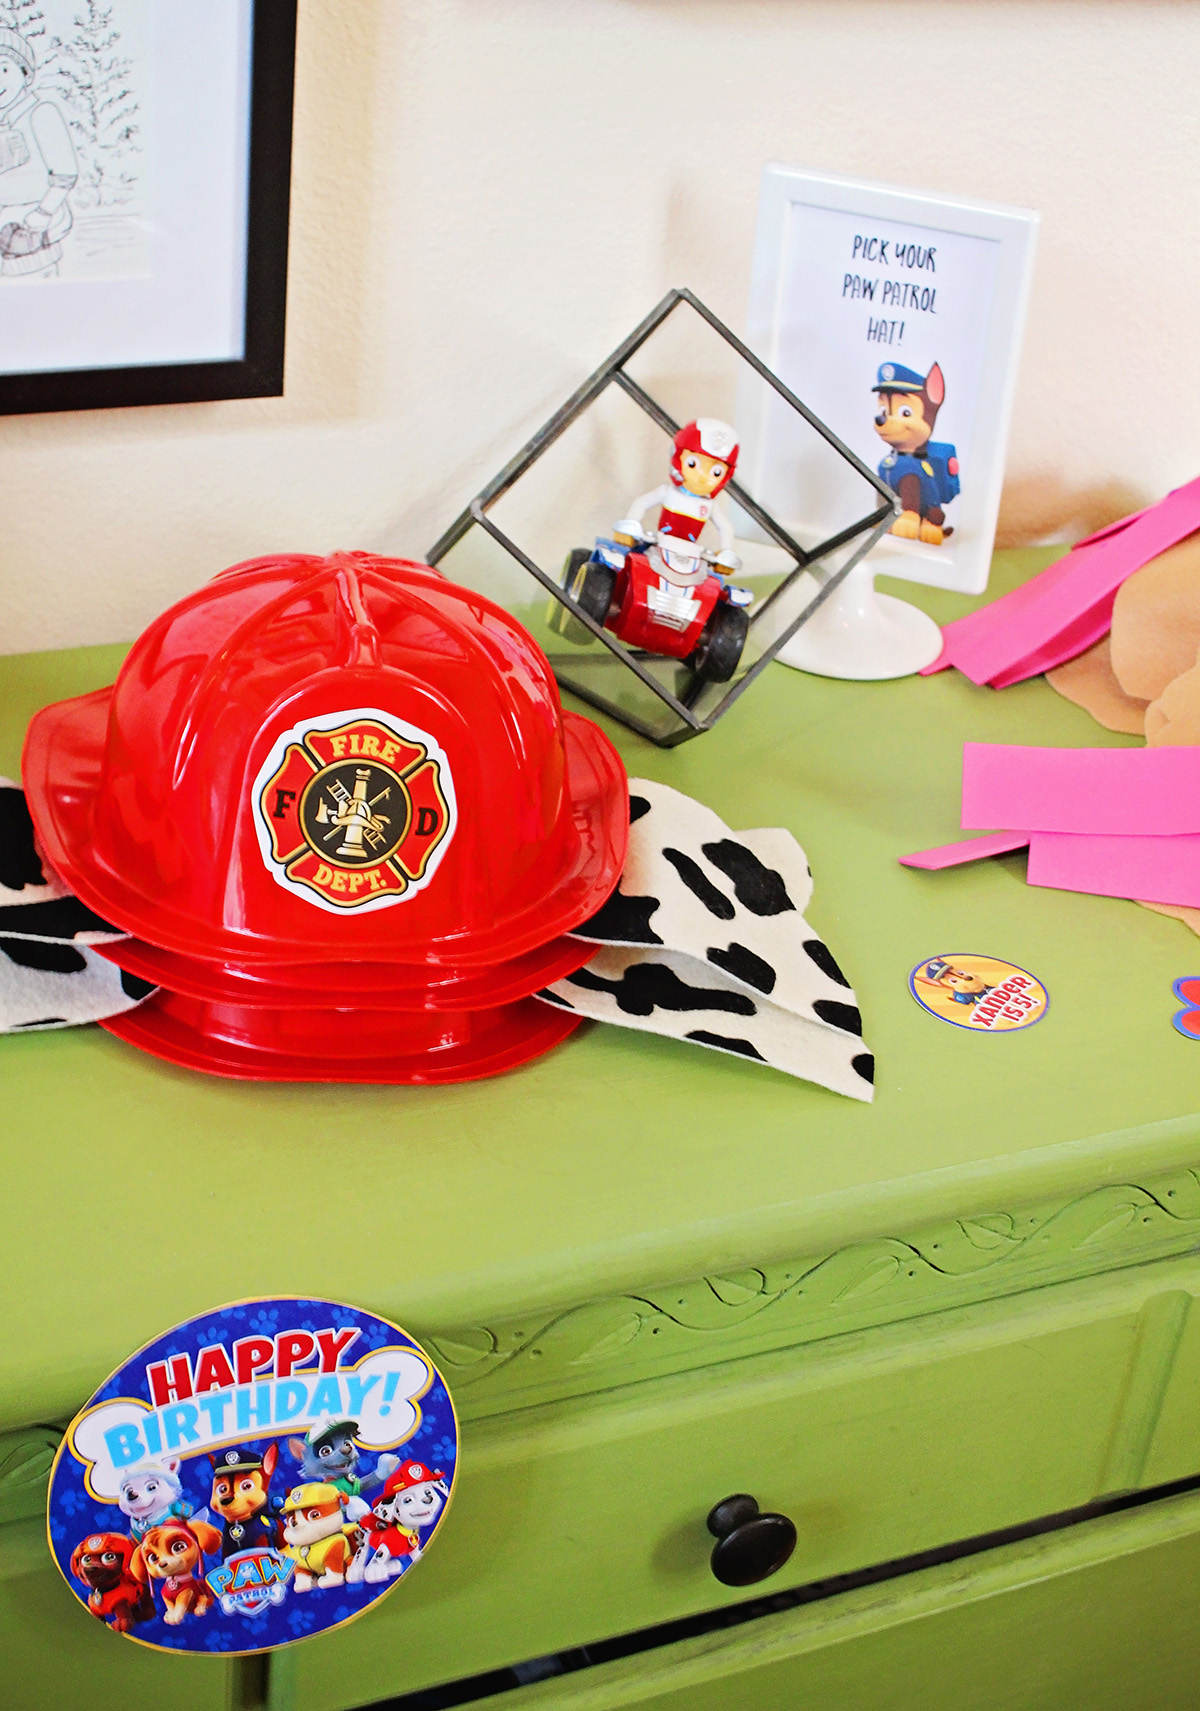 DIY Hat for Marshall from Paw Patrol